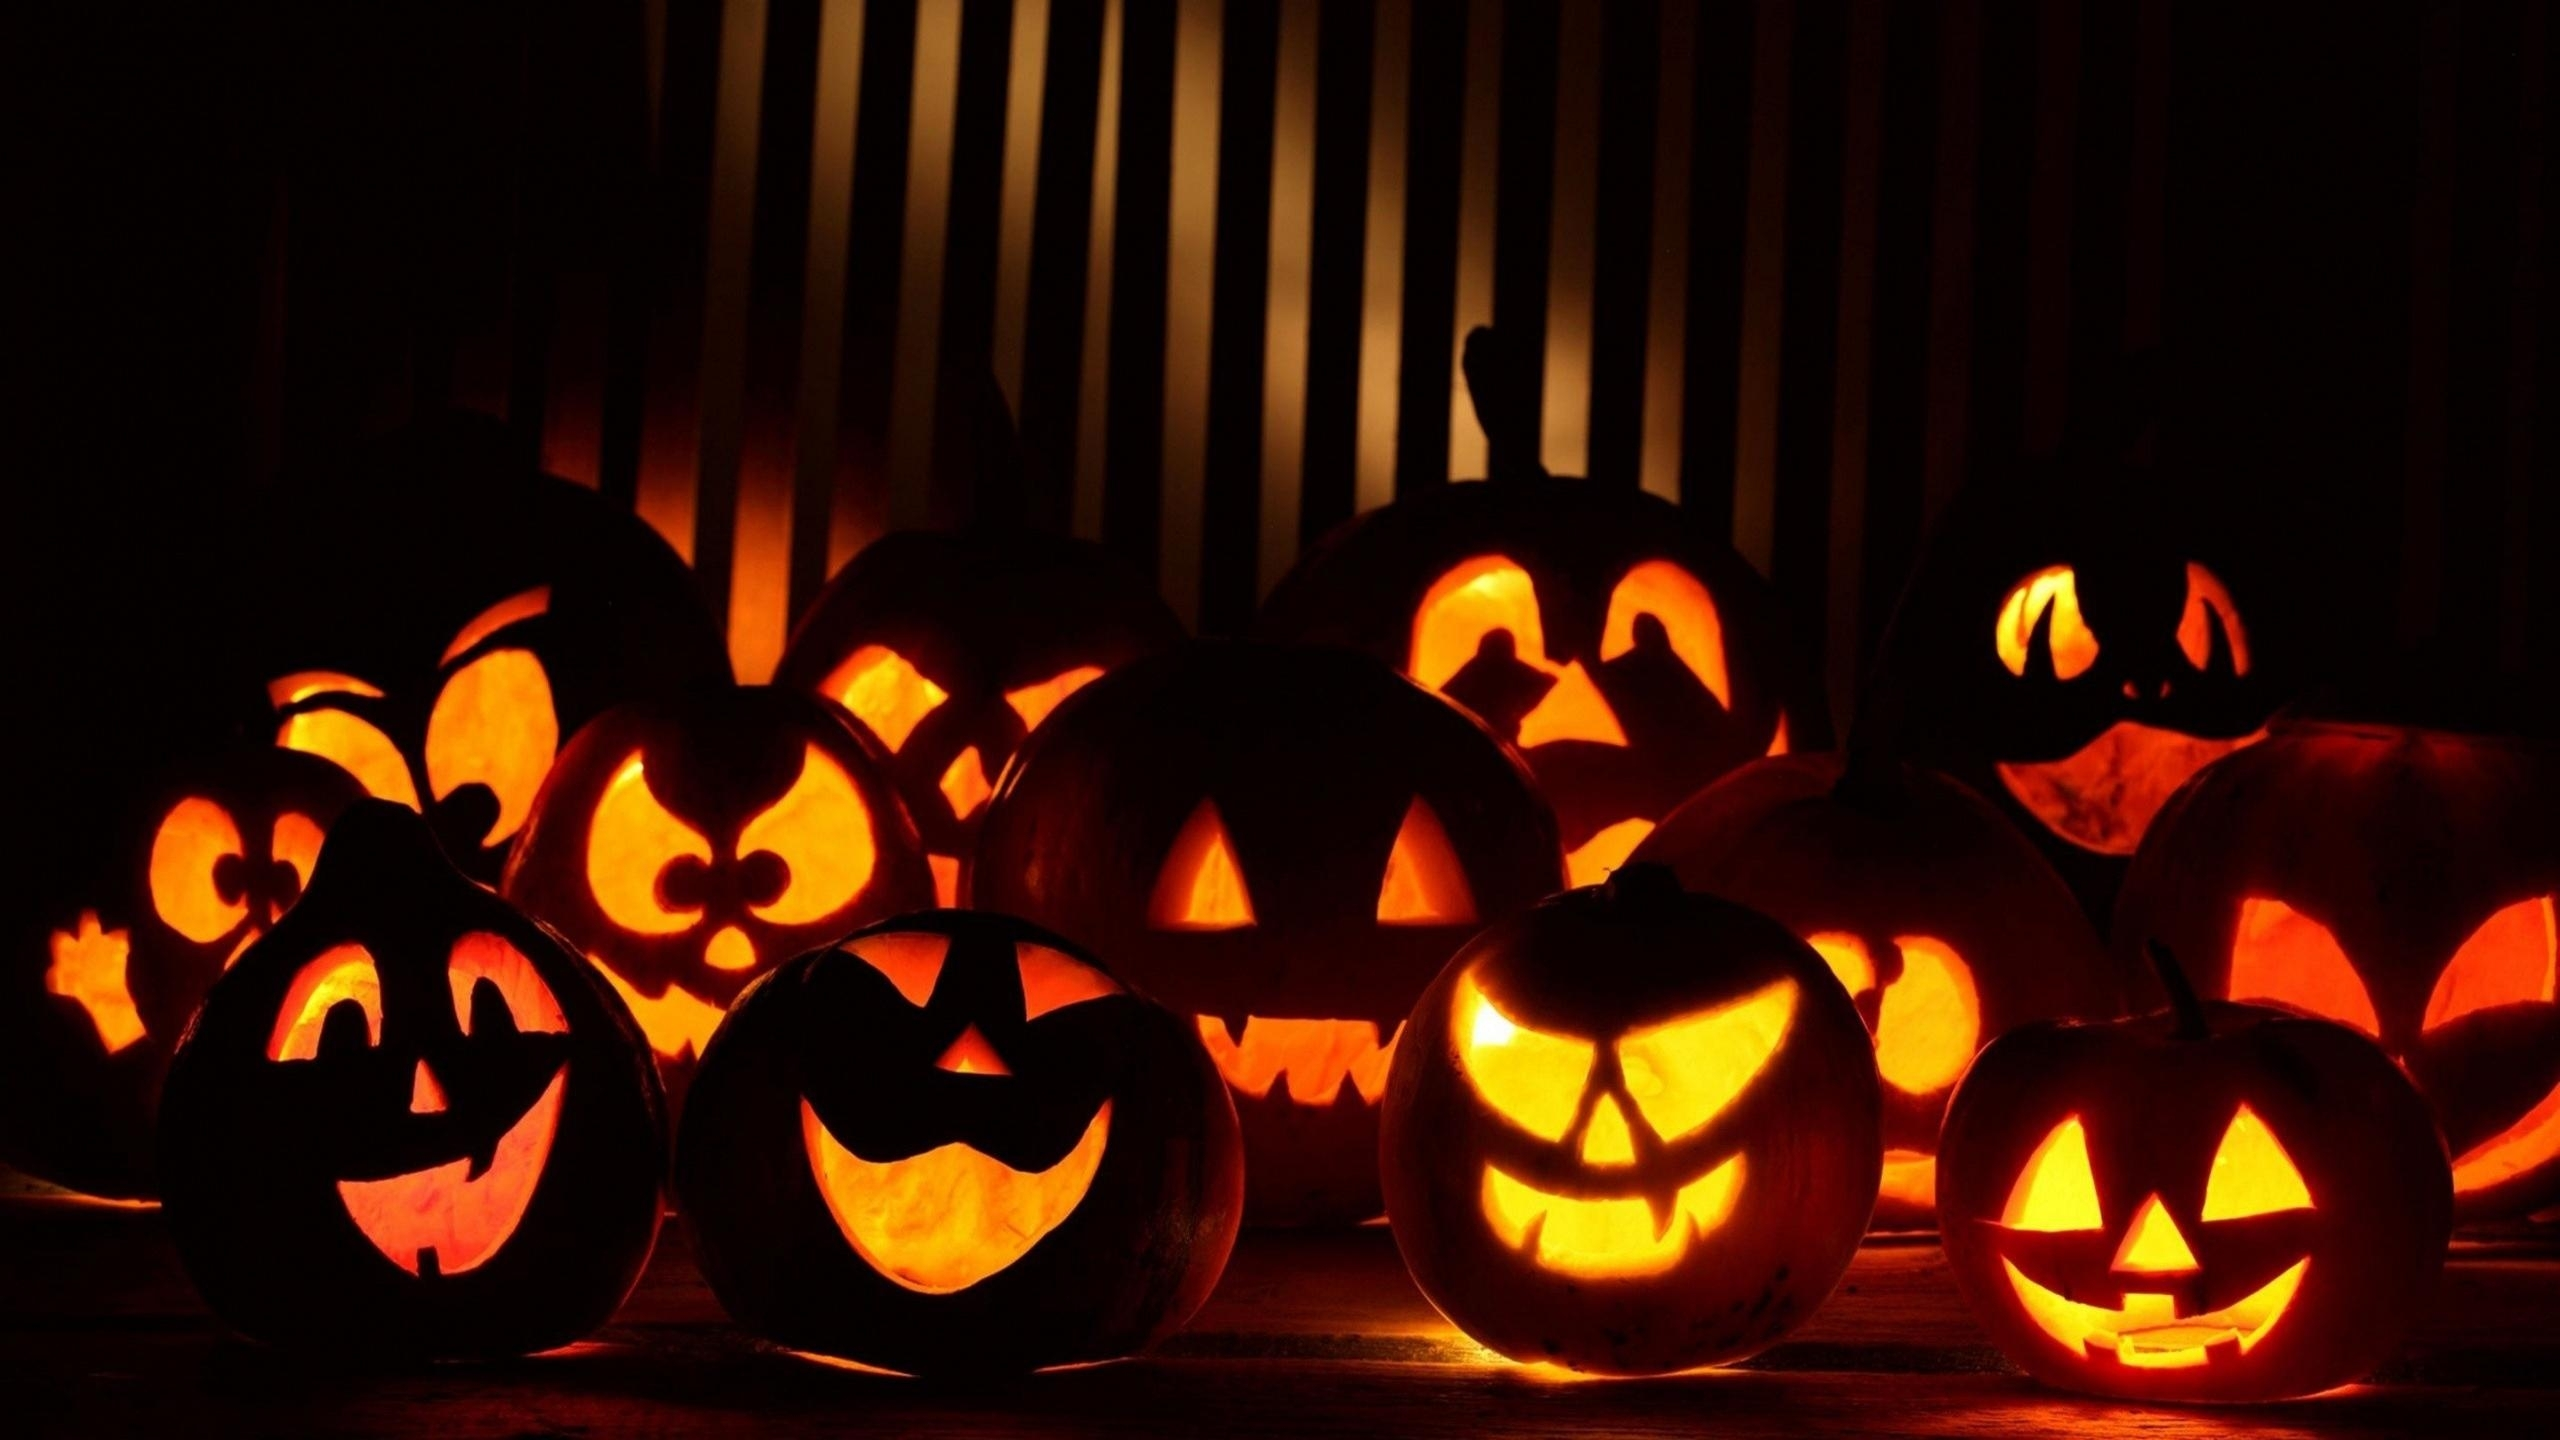 halloween pumpkin dark hd wallpapers. - media file | pixelstalk